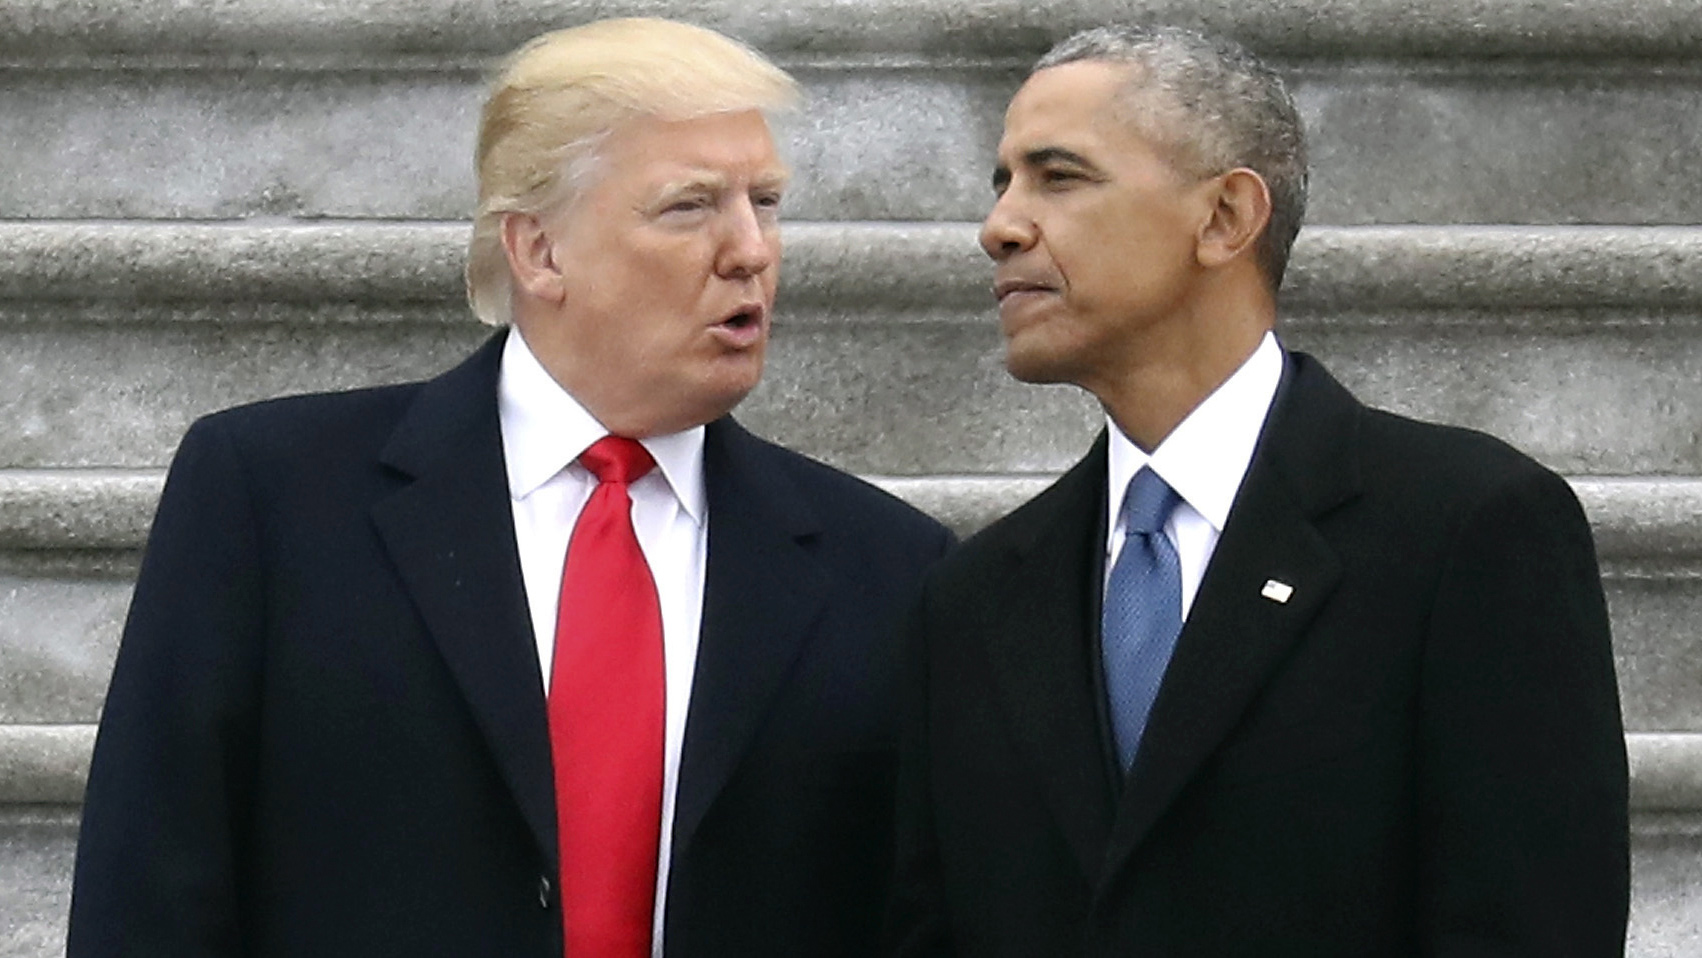 New President Donald Trump talks with former President Barack Obama on Capitol Hill as the reigns were handed over on January 20, 2017.